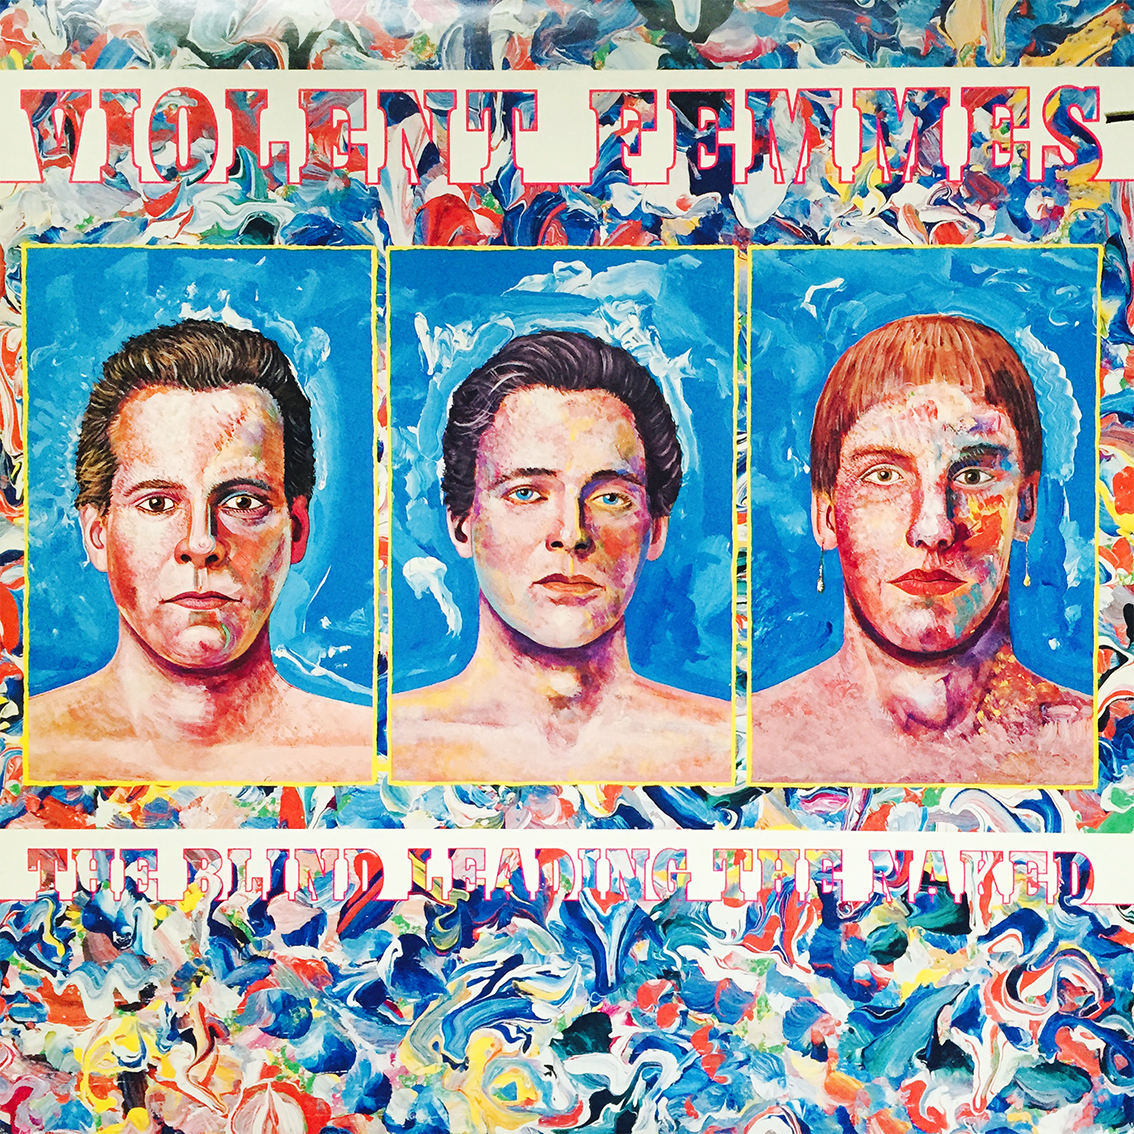 The Blind Leading The Naked by Violent Femmes on